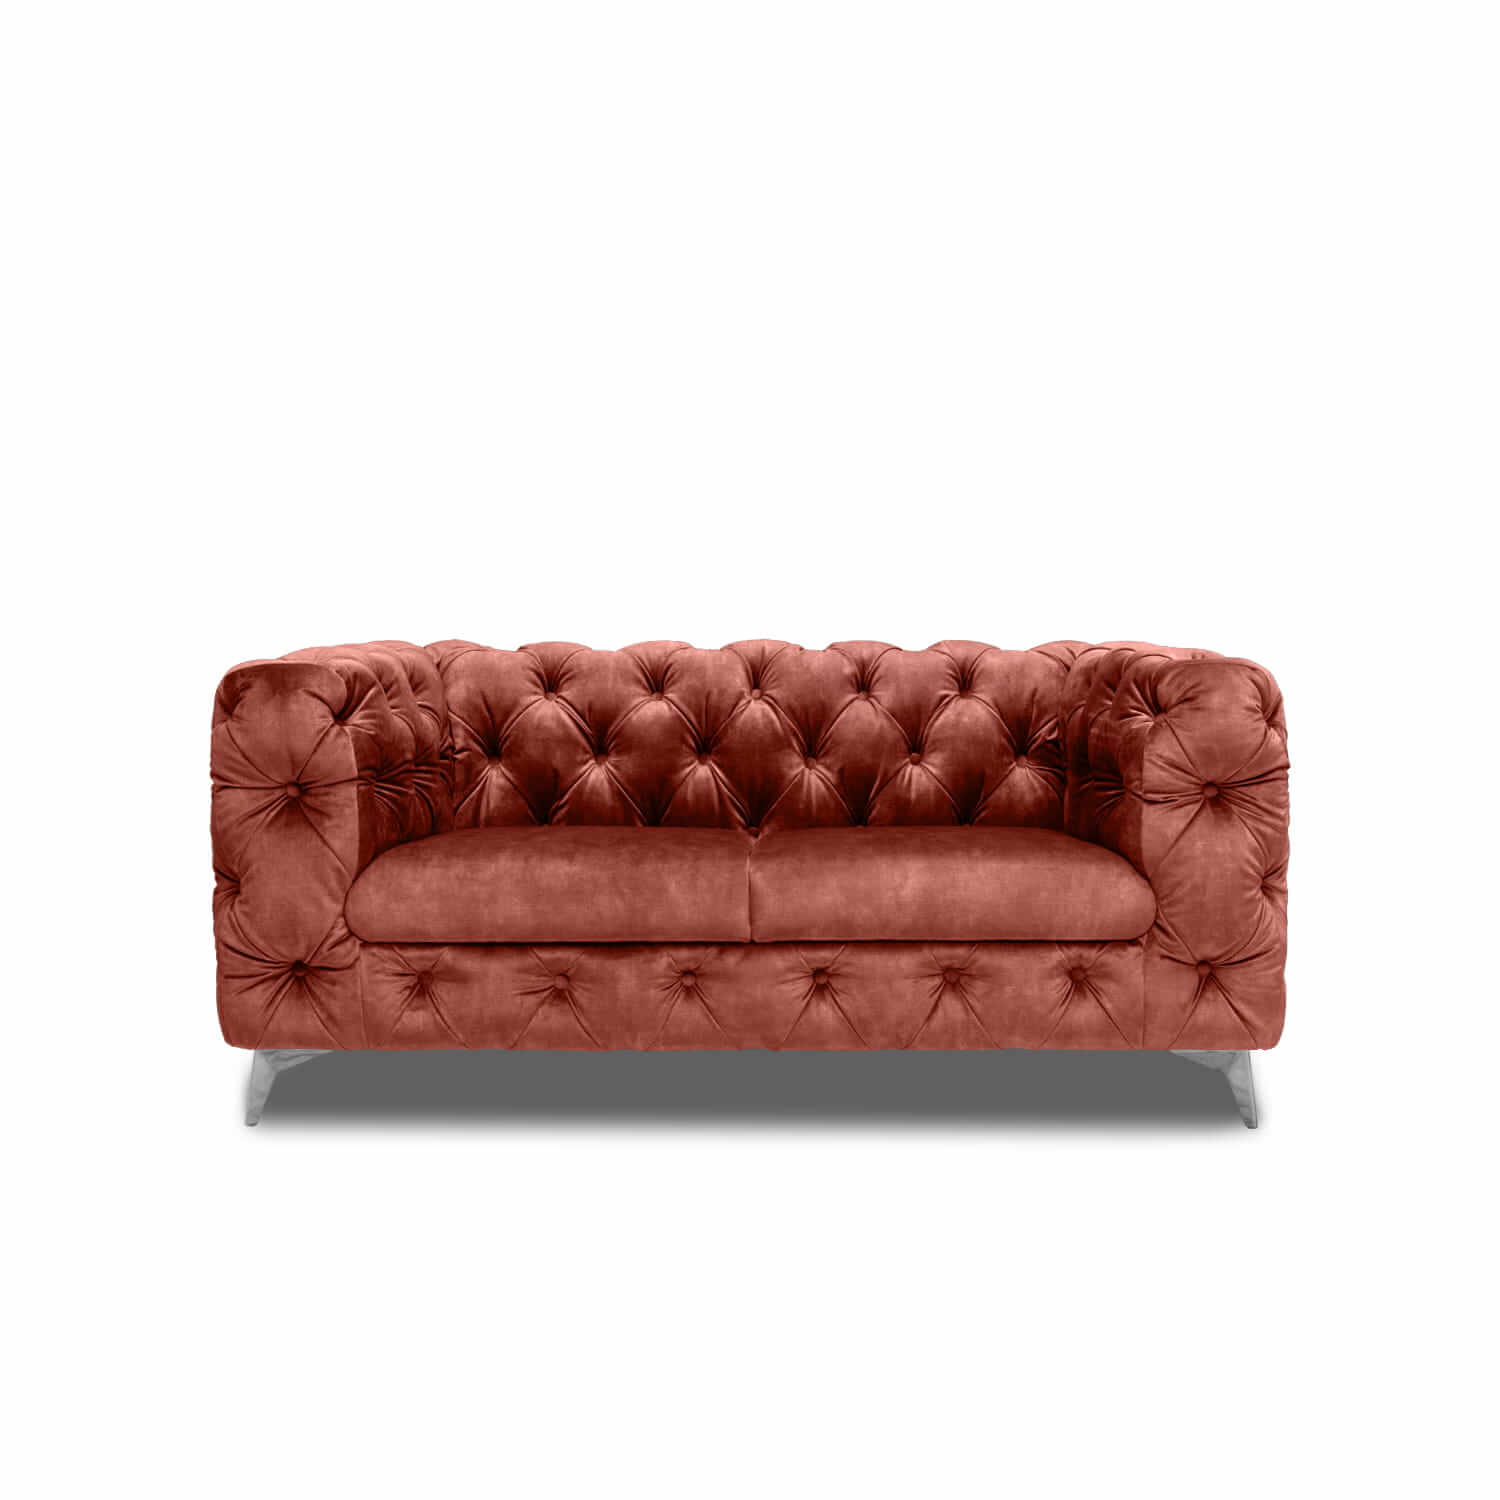 https://www.excluzive.se/wp-content/uploads/2020/10/Chesterfield-Martens-2-sits-Coral.jpg